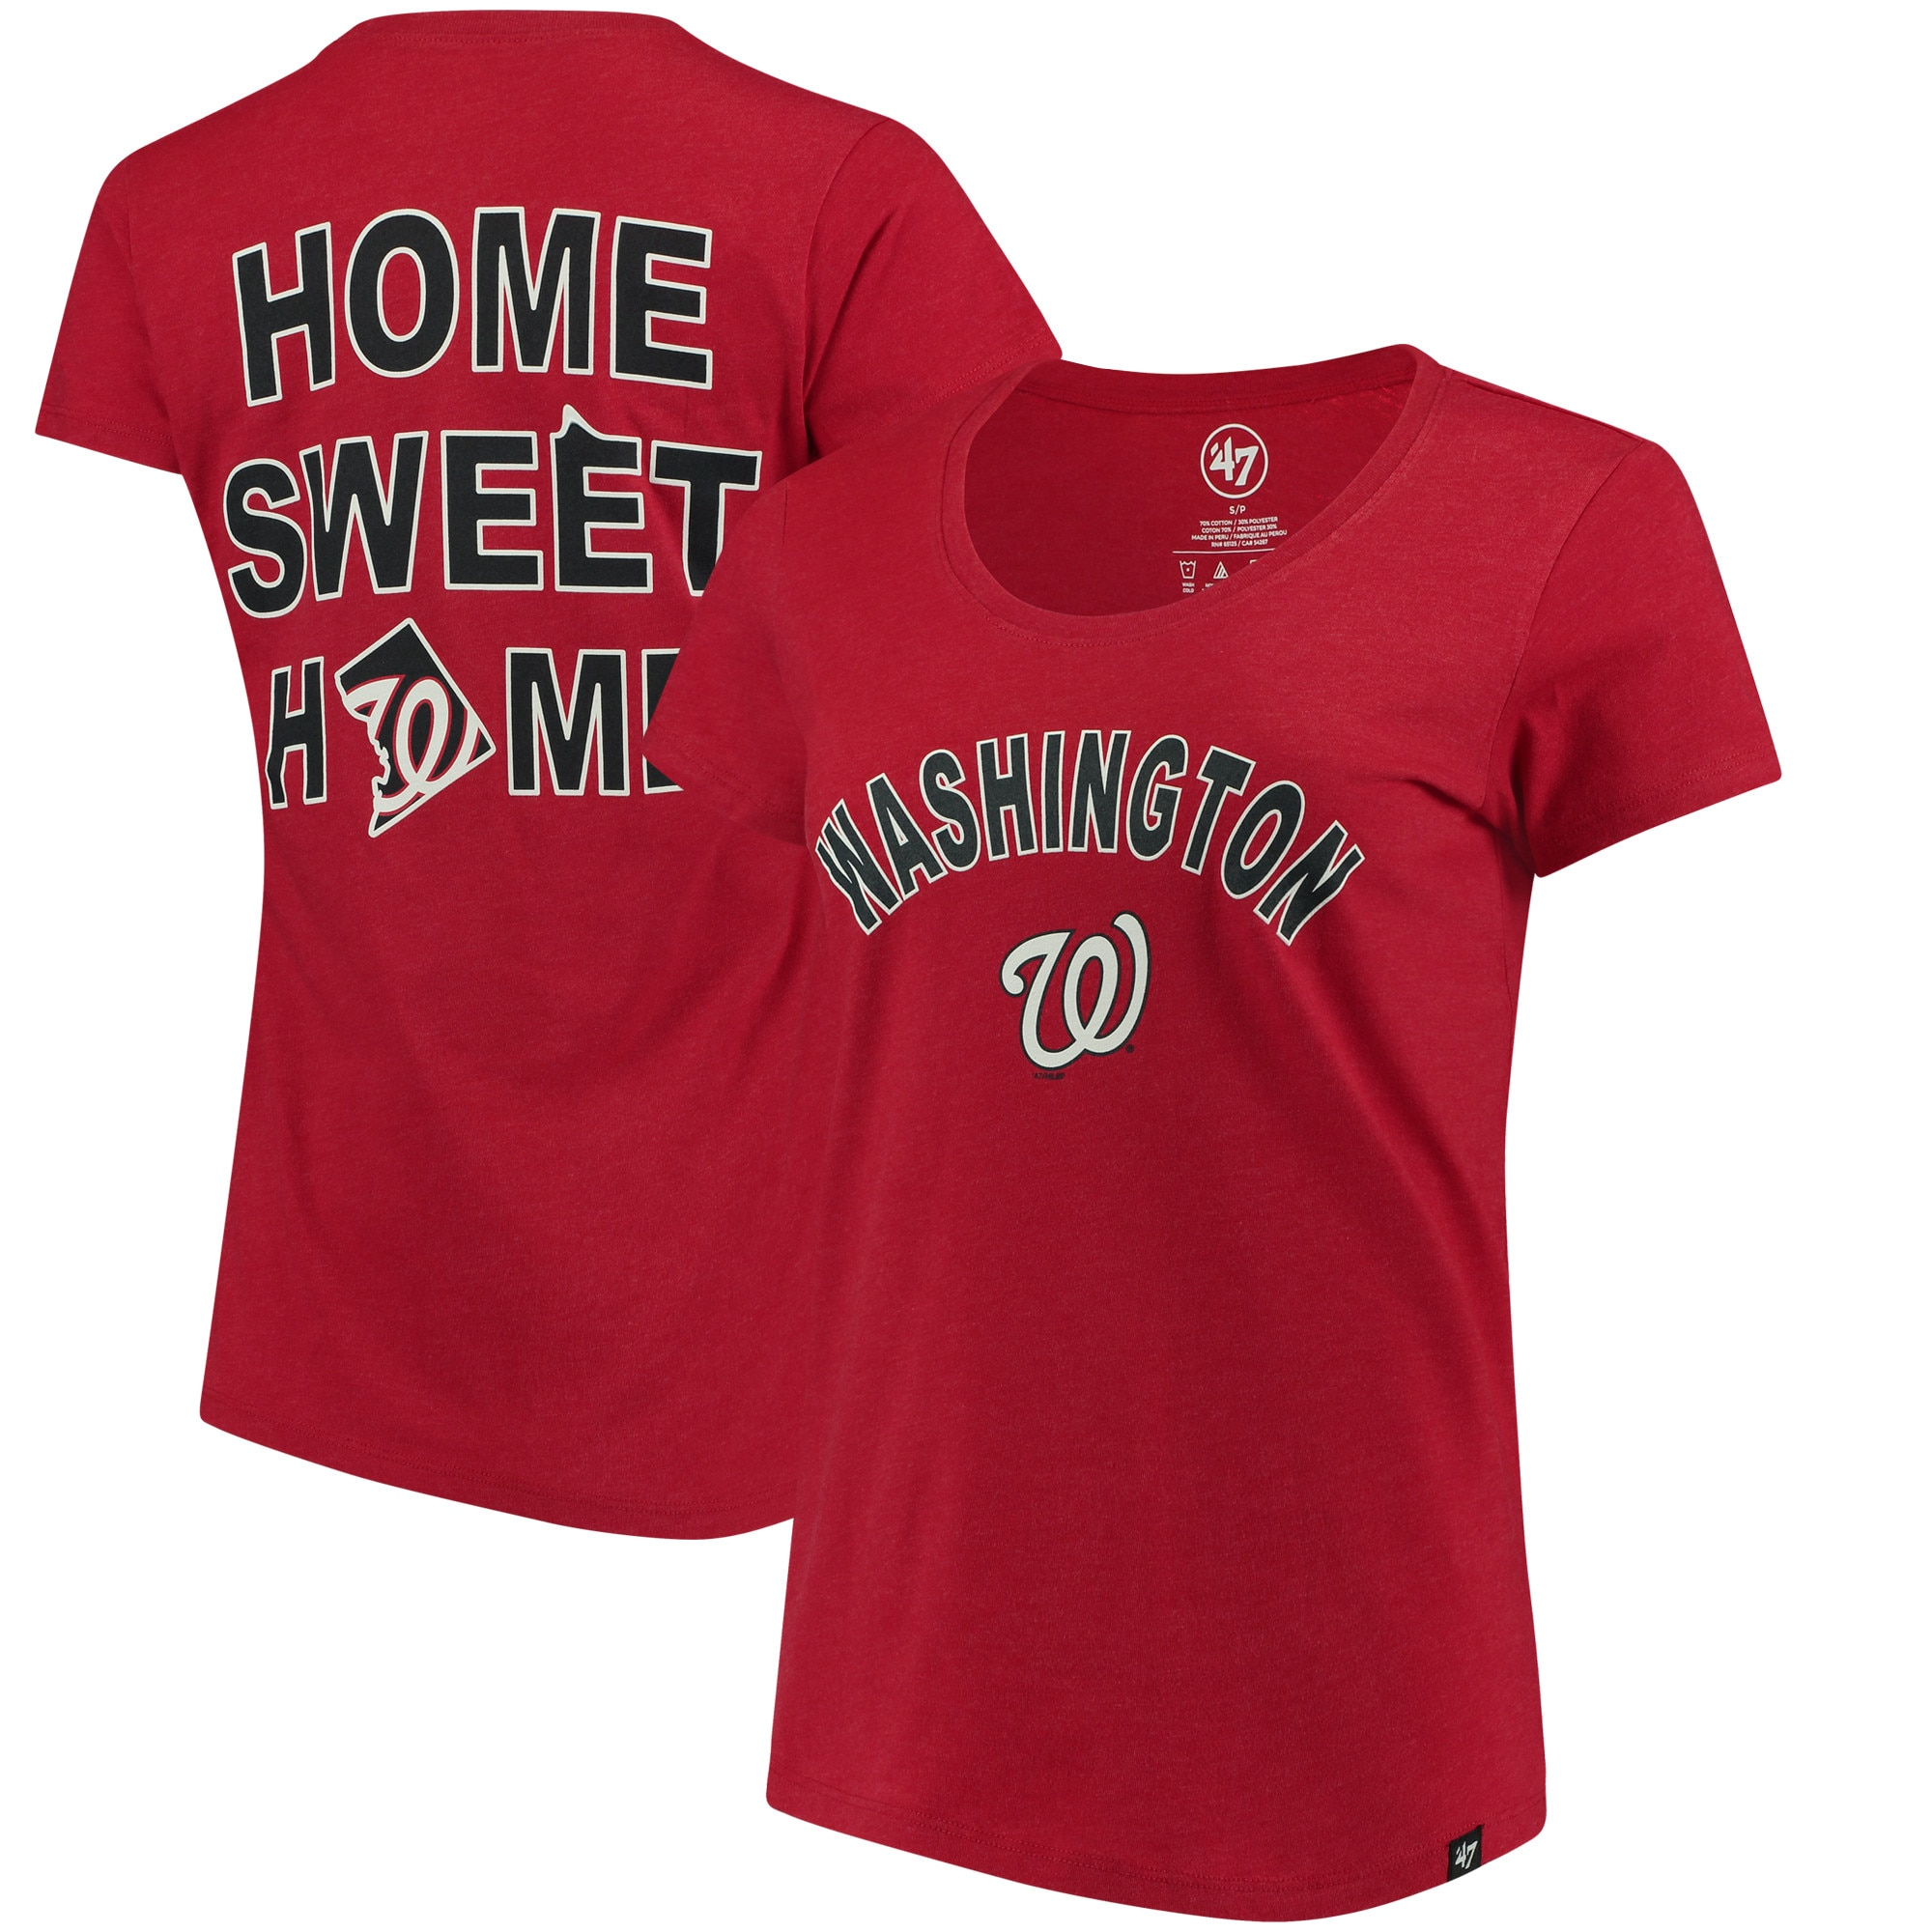 Washington Nationals '47 Women's Club Scoop Neck T-Shirt - Red